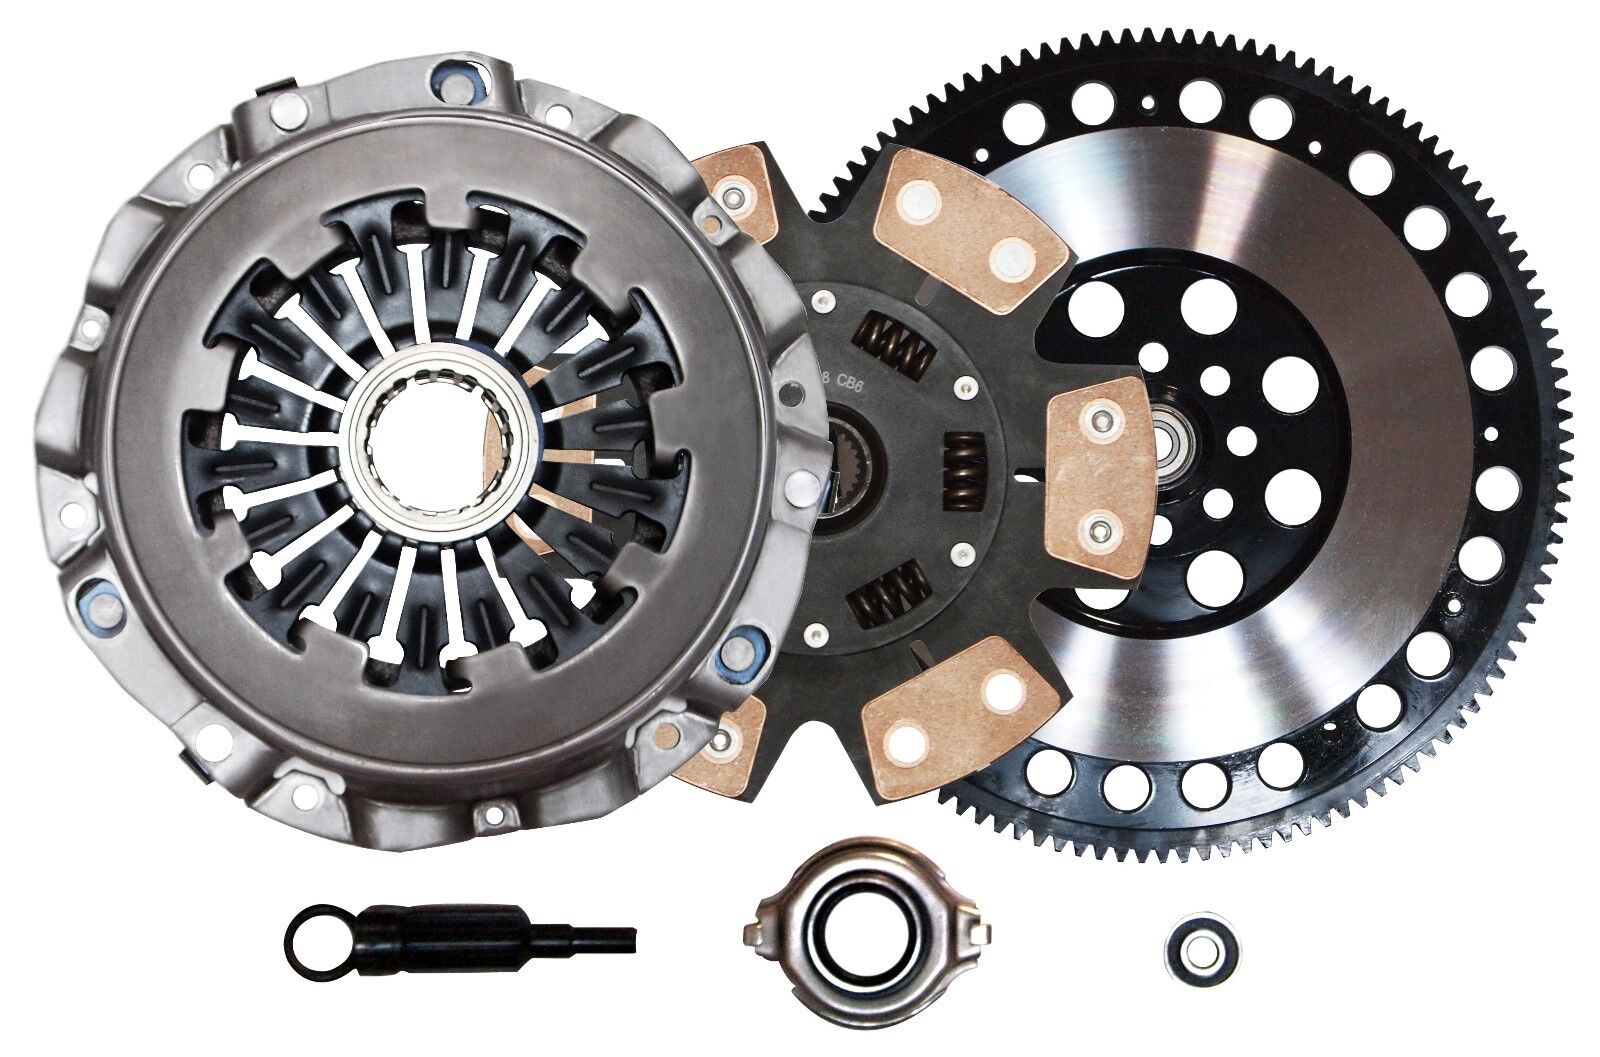 QSC Stage 3 Clutch Kit Chromoly Flywheel for Subaru WRX 02-05 EJ20 EJ20T EJ205 | eBay